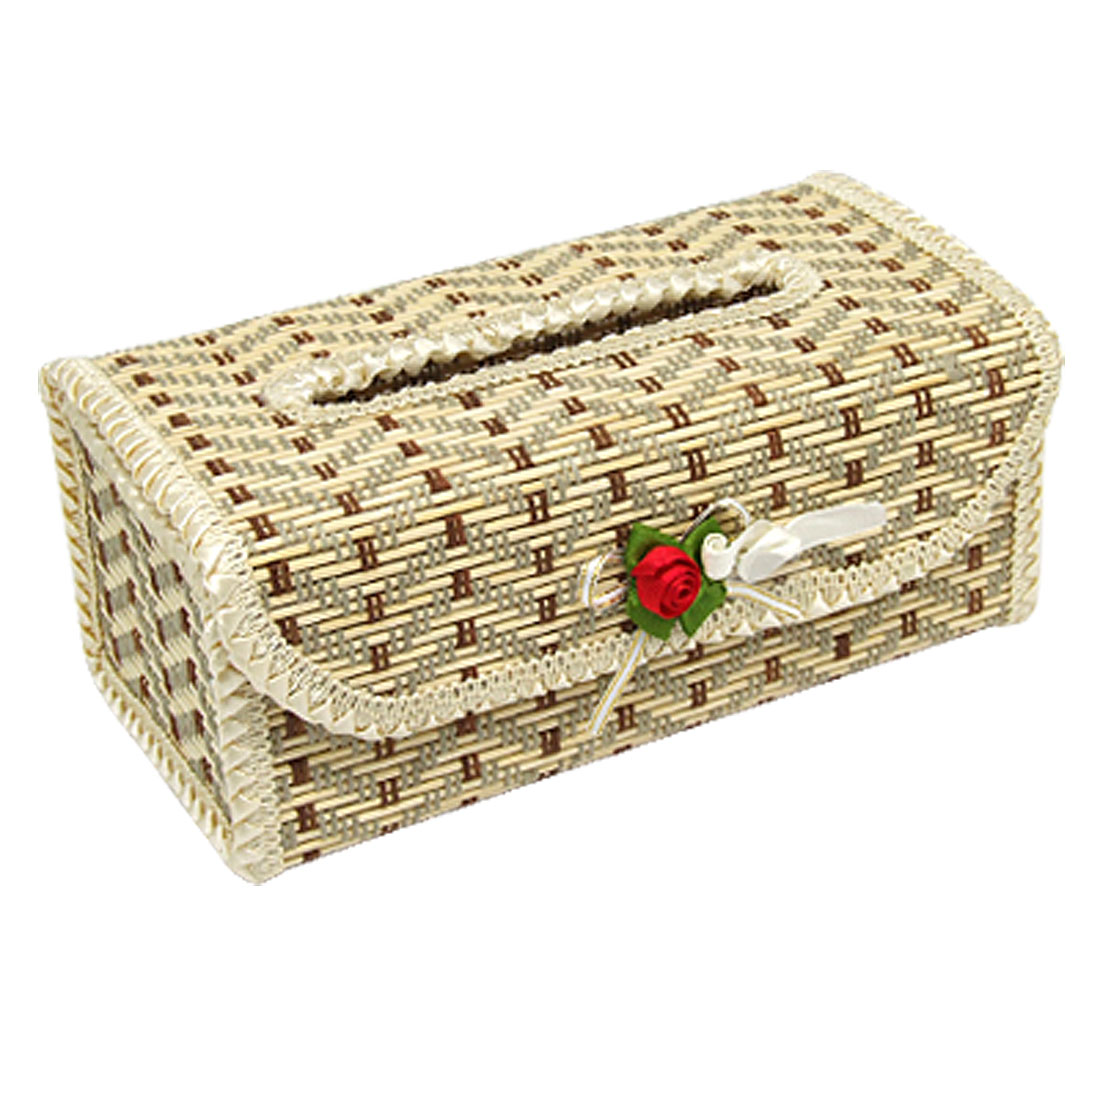 Embroidery Bamboo Decoration Tissue Paper Box Cover Holder